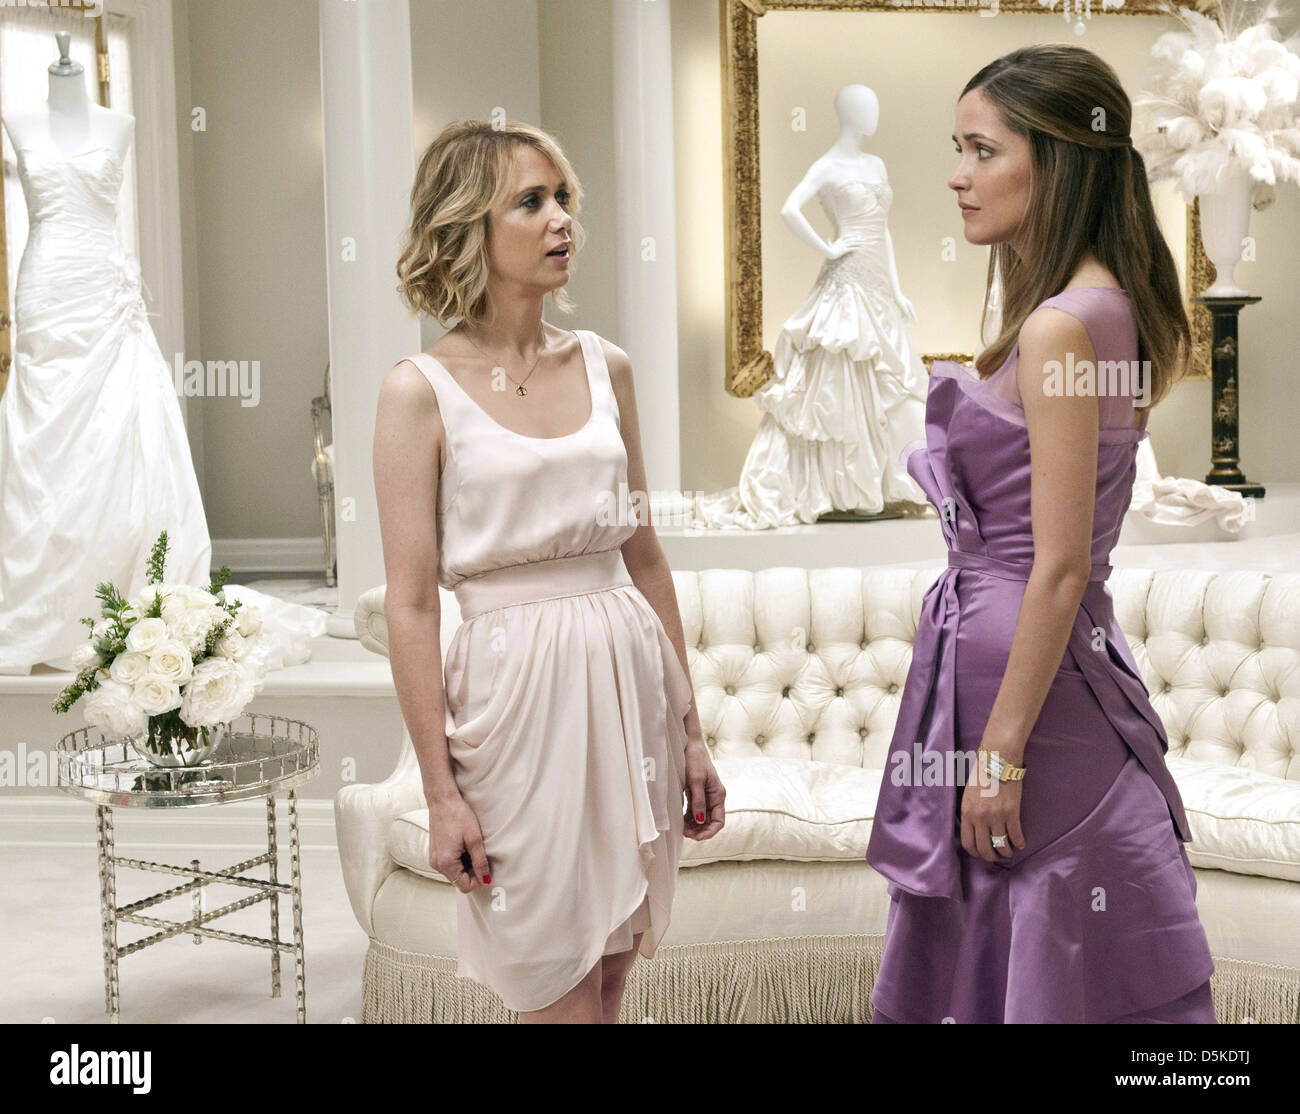 Bridesmaids Film High Resolution Stock Photography And Images Alamy